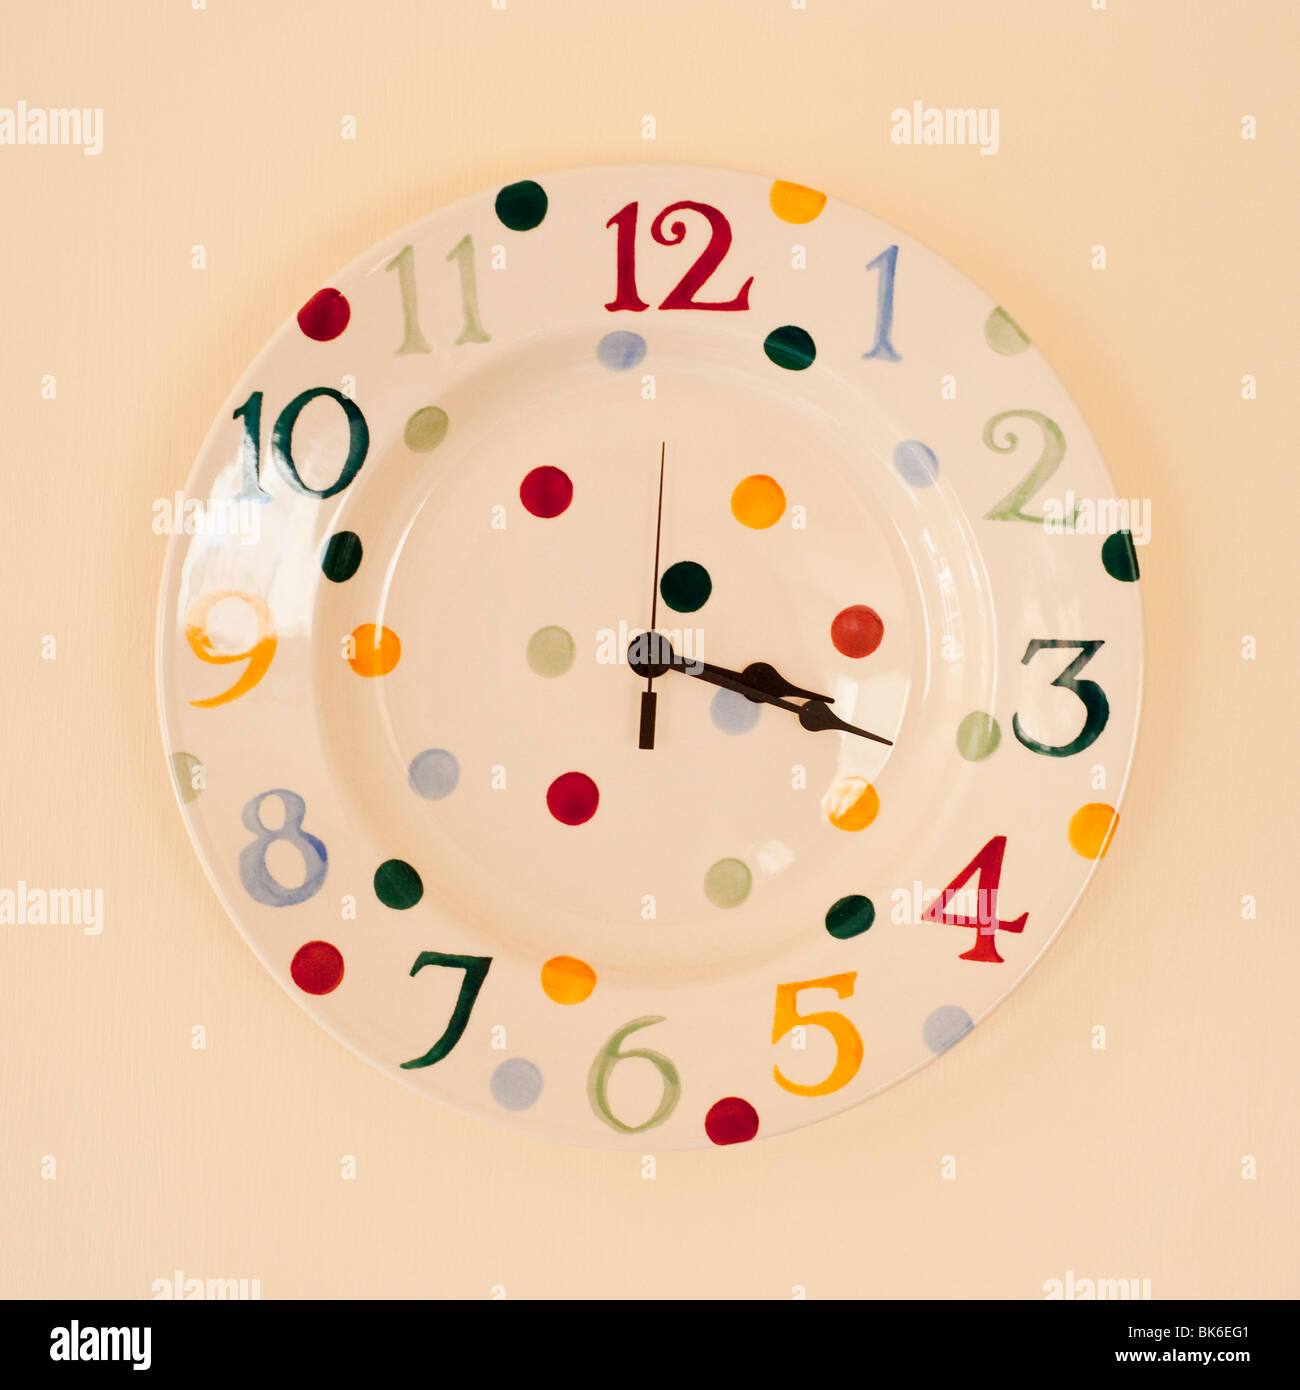 A Polka dot patterned clock by Emma Bridgewater decorated by hand hanging on a wall - Stock Image